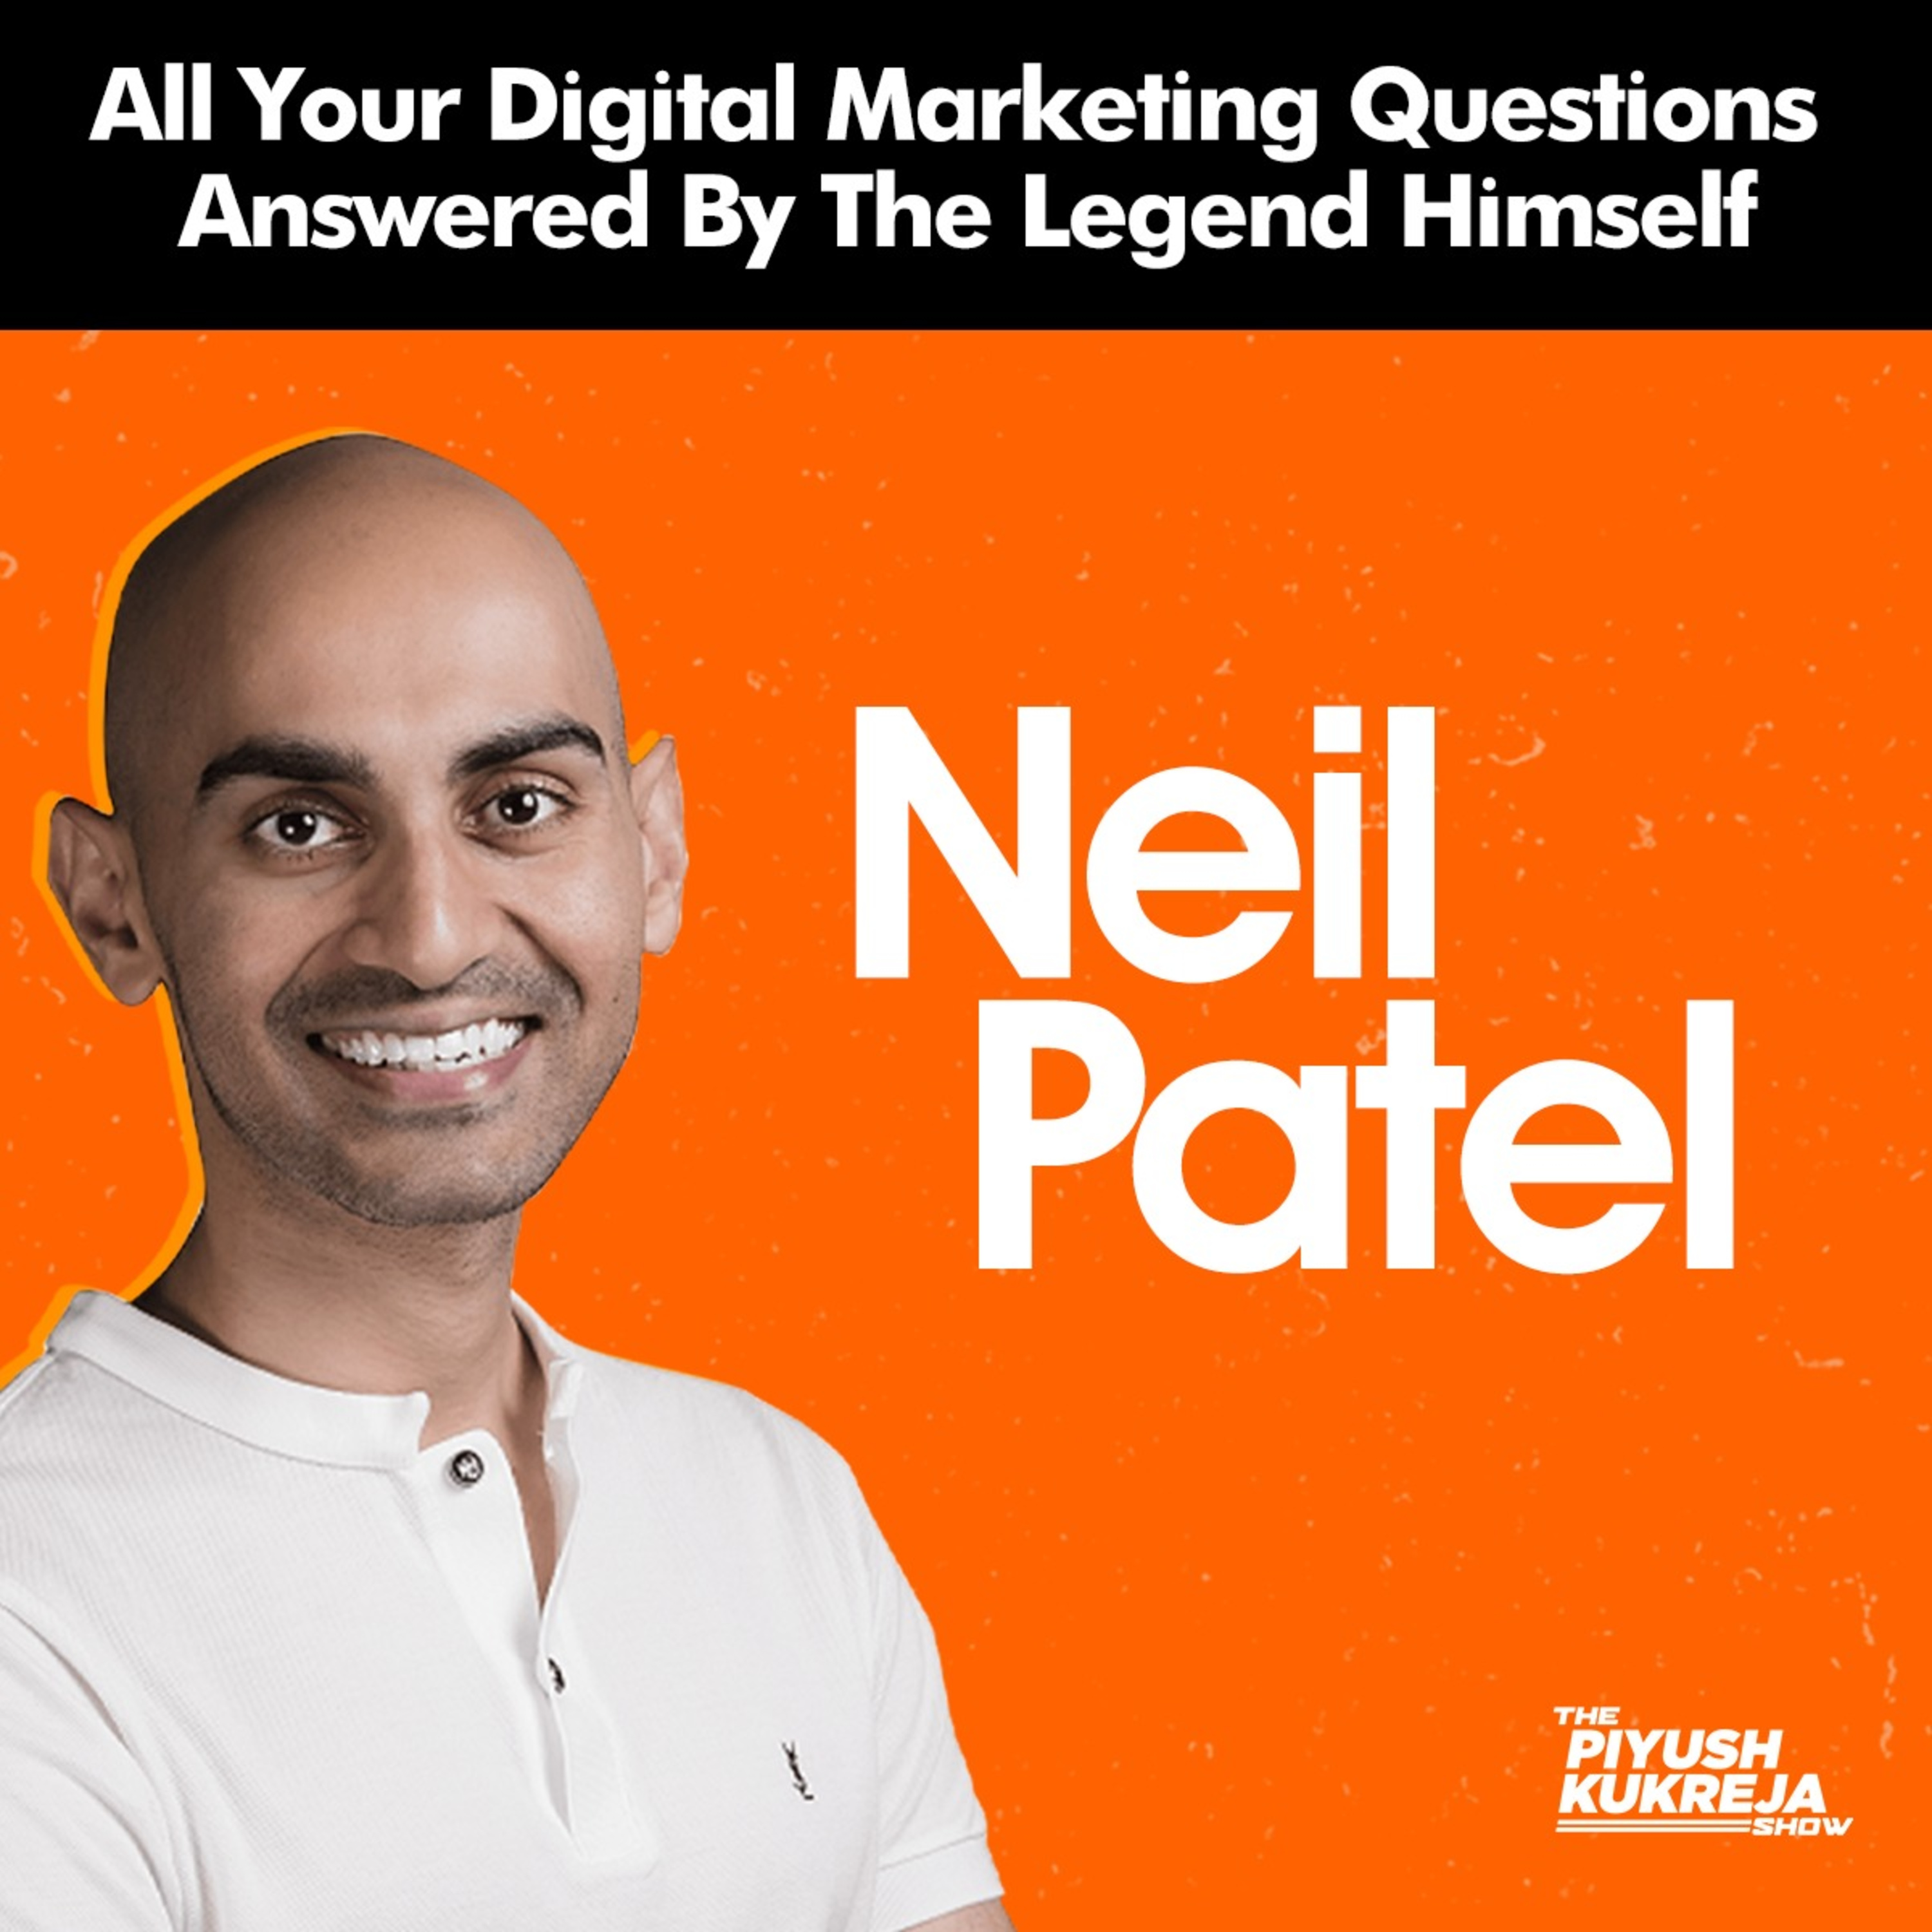 All your digital marketing questions answered by Neil Patel | The Piyush Kukreja Show Ft.Neil Patel